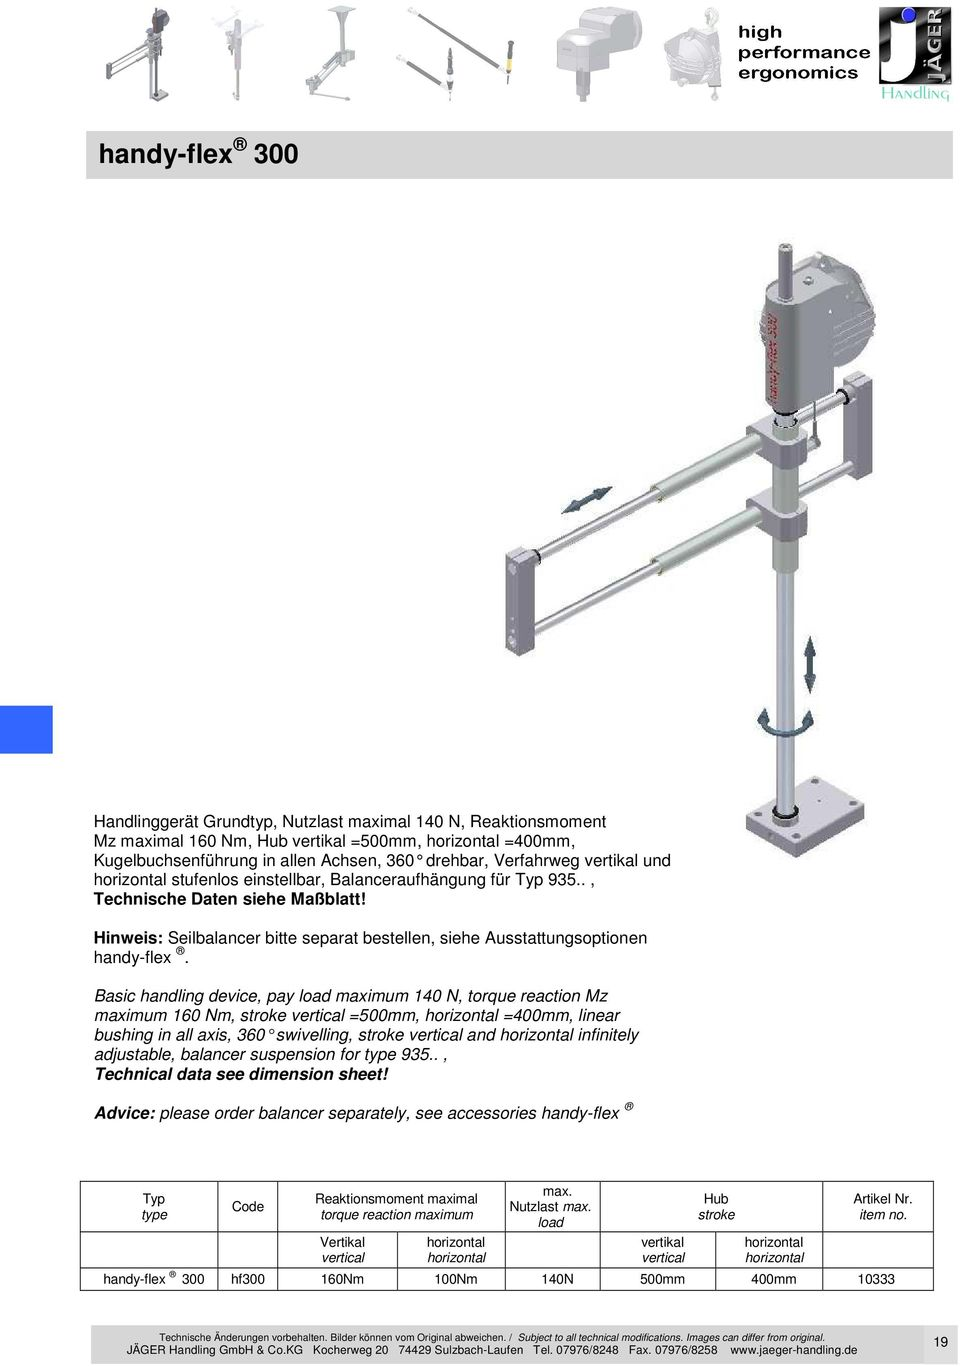 Basic handling device, pay load maximum 140 N, torque reaction Mz maximum 160 Nm, stroke vertical =500mm, =400mm, linear bushing in all axis, 360 swivelling, stroke vertic al and infinitely